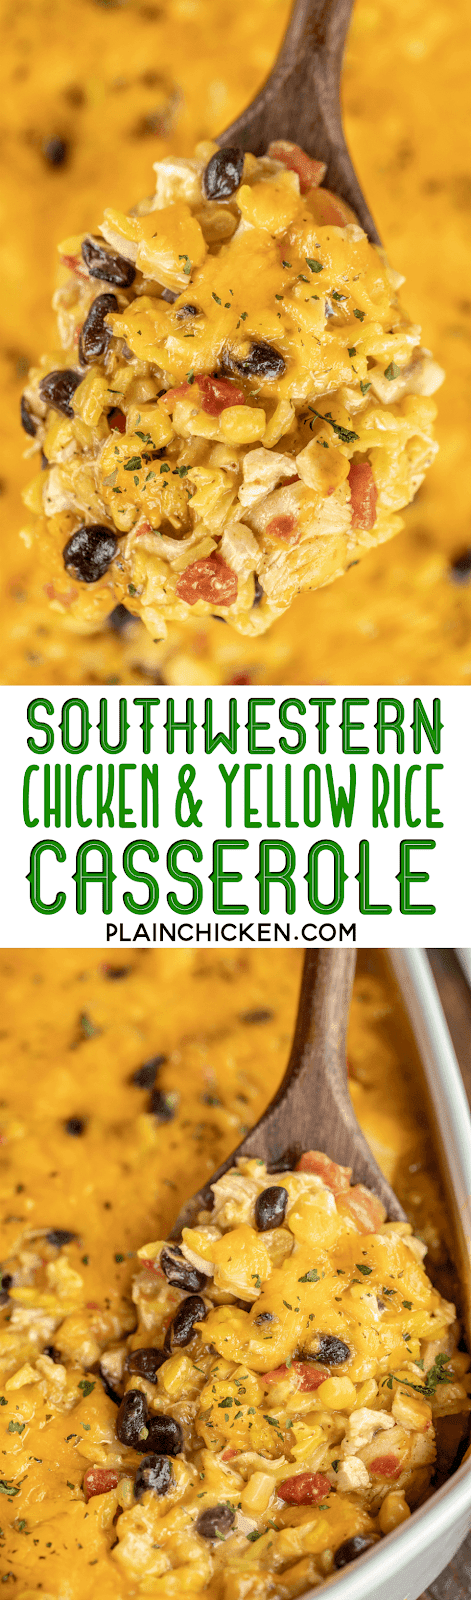 Southwestern Chicken & Yellow Rice Casserole - seriously delicious! We ate this for dinner and reheated for lunch the next day. Chicken, yellow rice, cream of chicken soup, corn, black beans, rotel diced tomatoes and green chiles and cheese.Use a rotisserie chicken and this is ready to bake in minutes. Can make in advance and refrigerate or freeze for later. Everyone LOVES this quick and easy weeknight casserole recipe! #freezermeal #chicken #casserole #mexican #chickencasserole